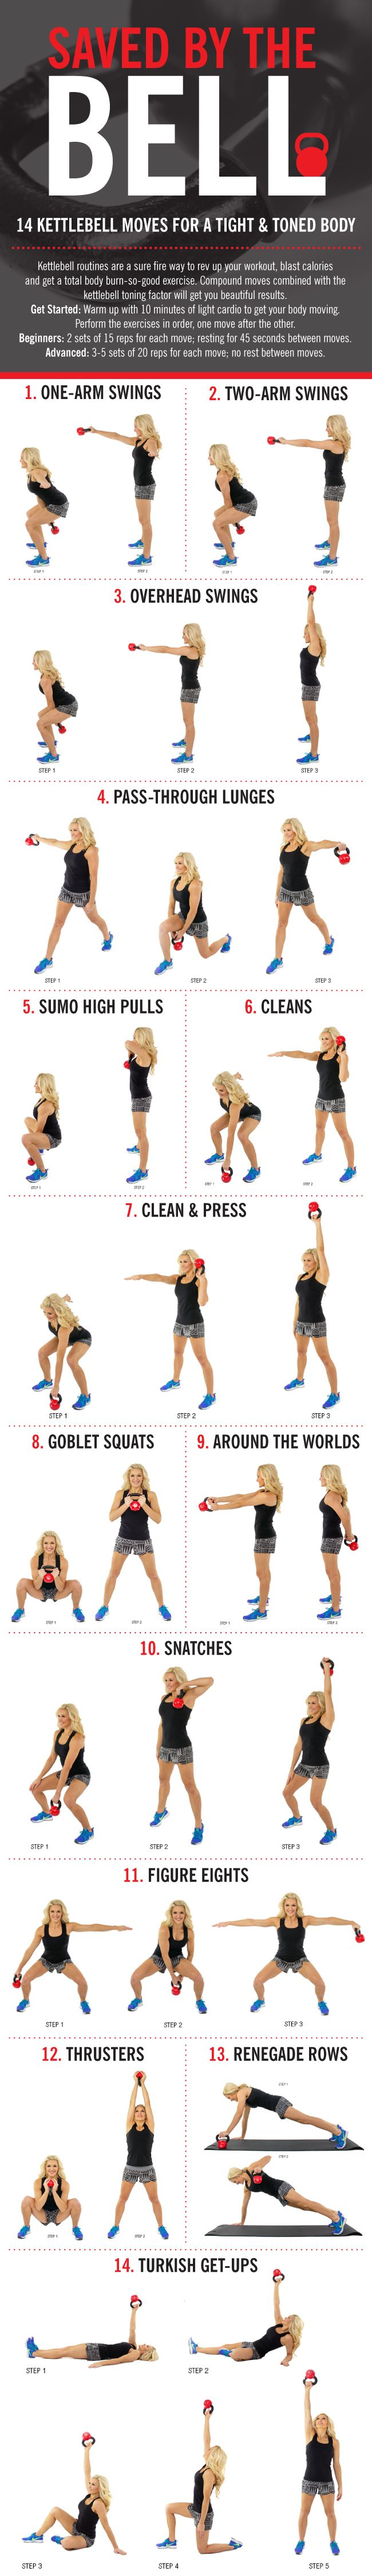 14 Kettlebell Moves for an Allover Body Calorie Torcher